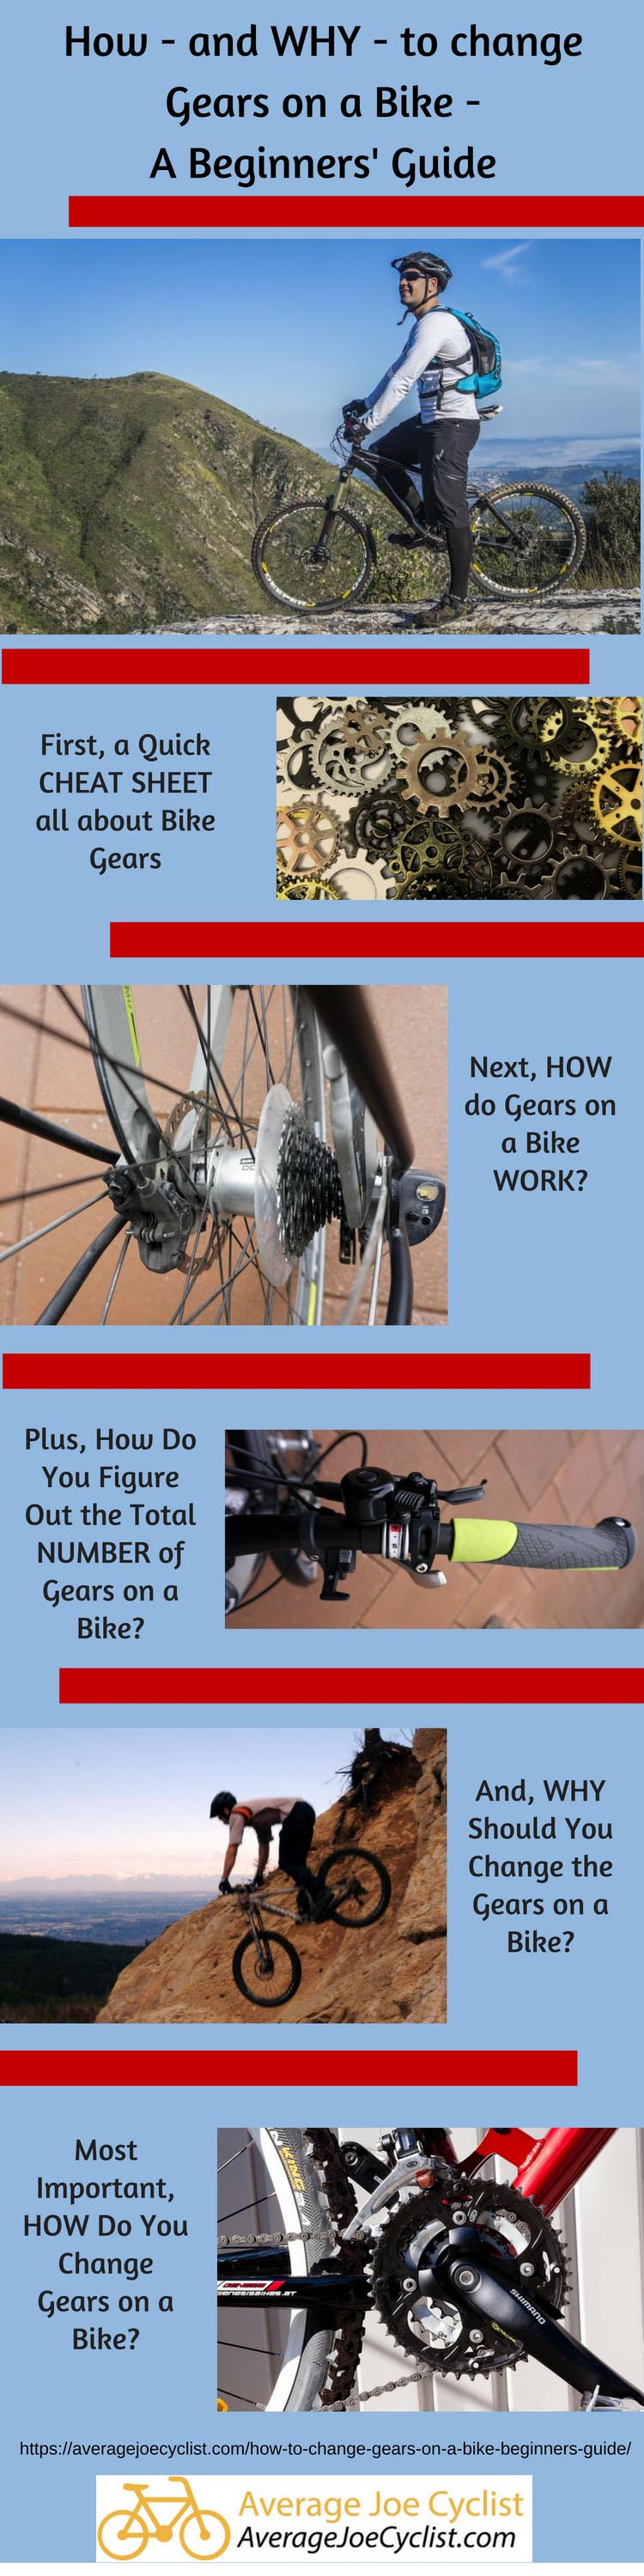 How and Why to change gears on a bike - A Beginners Guide